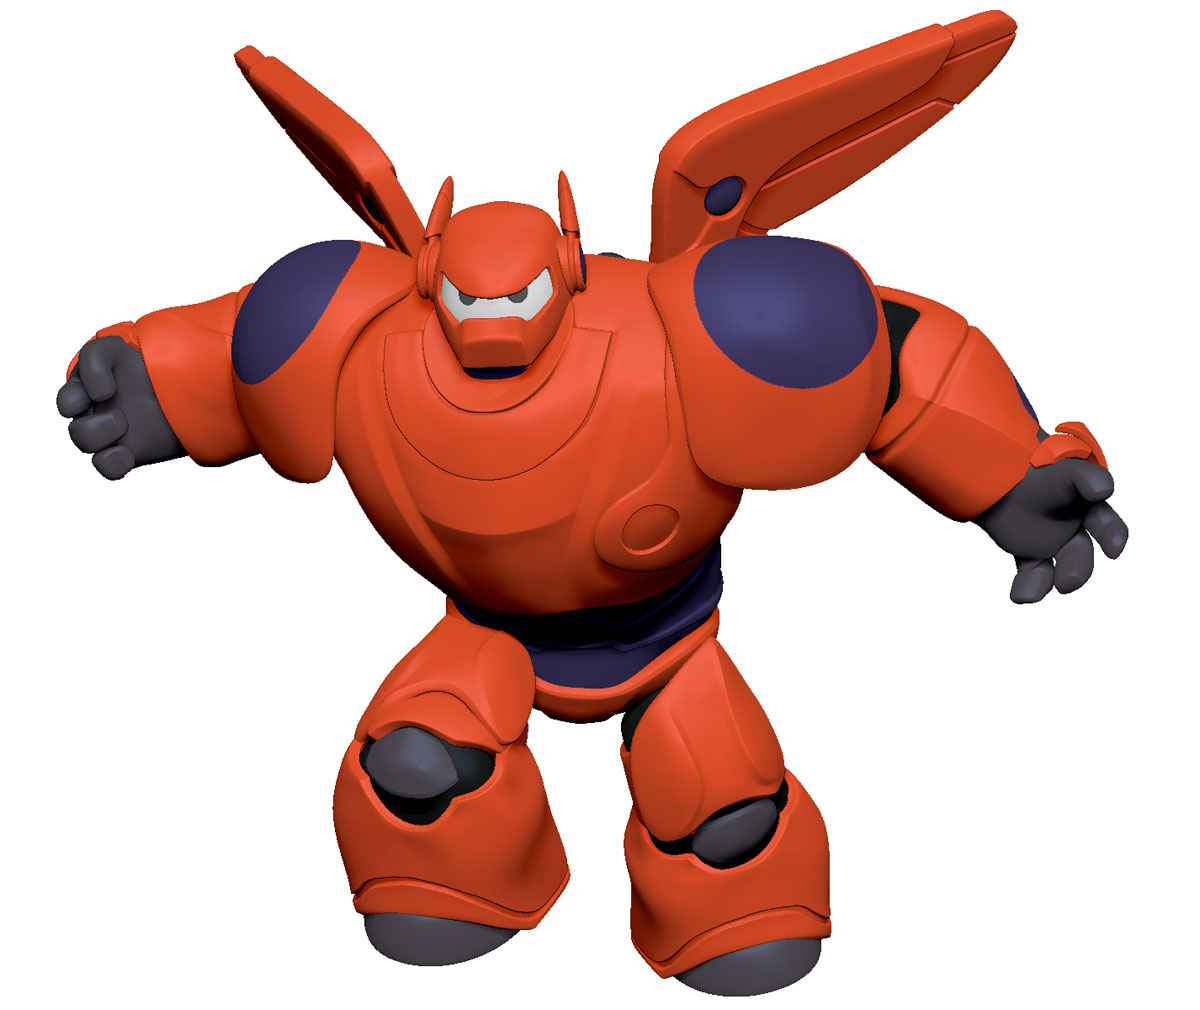 big hero 6 v2 Big hero 6: bot fight get ready to bot fight get ready to bot fight continue the journey with baymax, hiro and the rest of the big hero 6 team in an epic match-3 puzzle adventure.